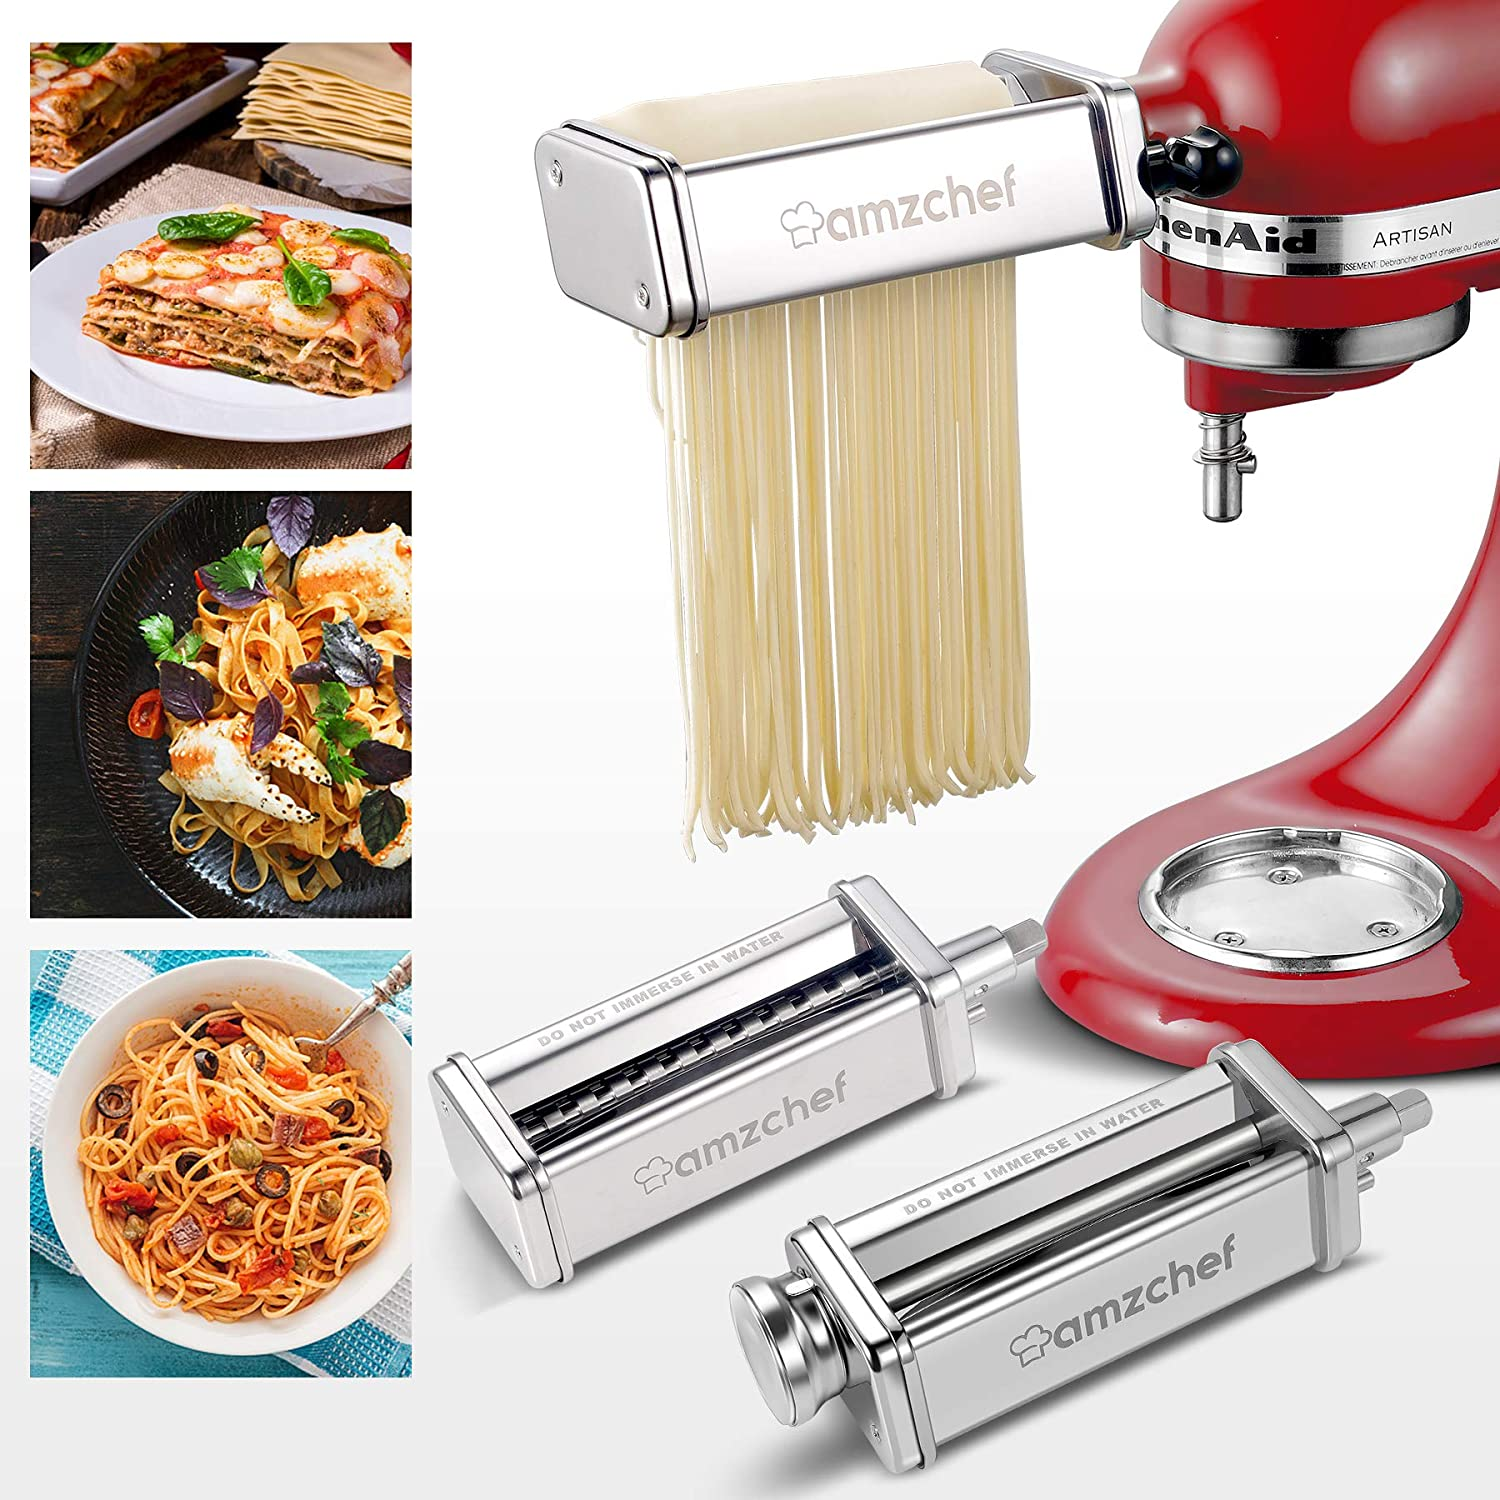 AMZCHEF Pasta Maker Attachment 3 in 1 Set for KitchenAid Stand Mixers,Stainless Steel Pasta Roller Accessories, Included Pasta Sheet Roller, Spaghetti&Fettuccine Cutter